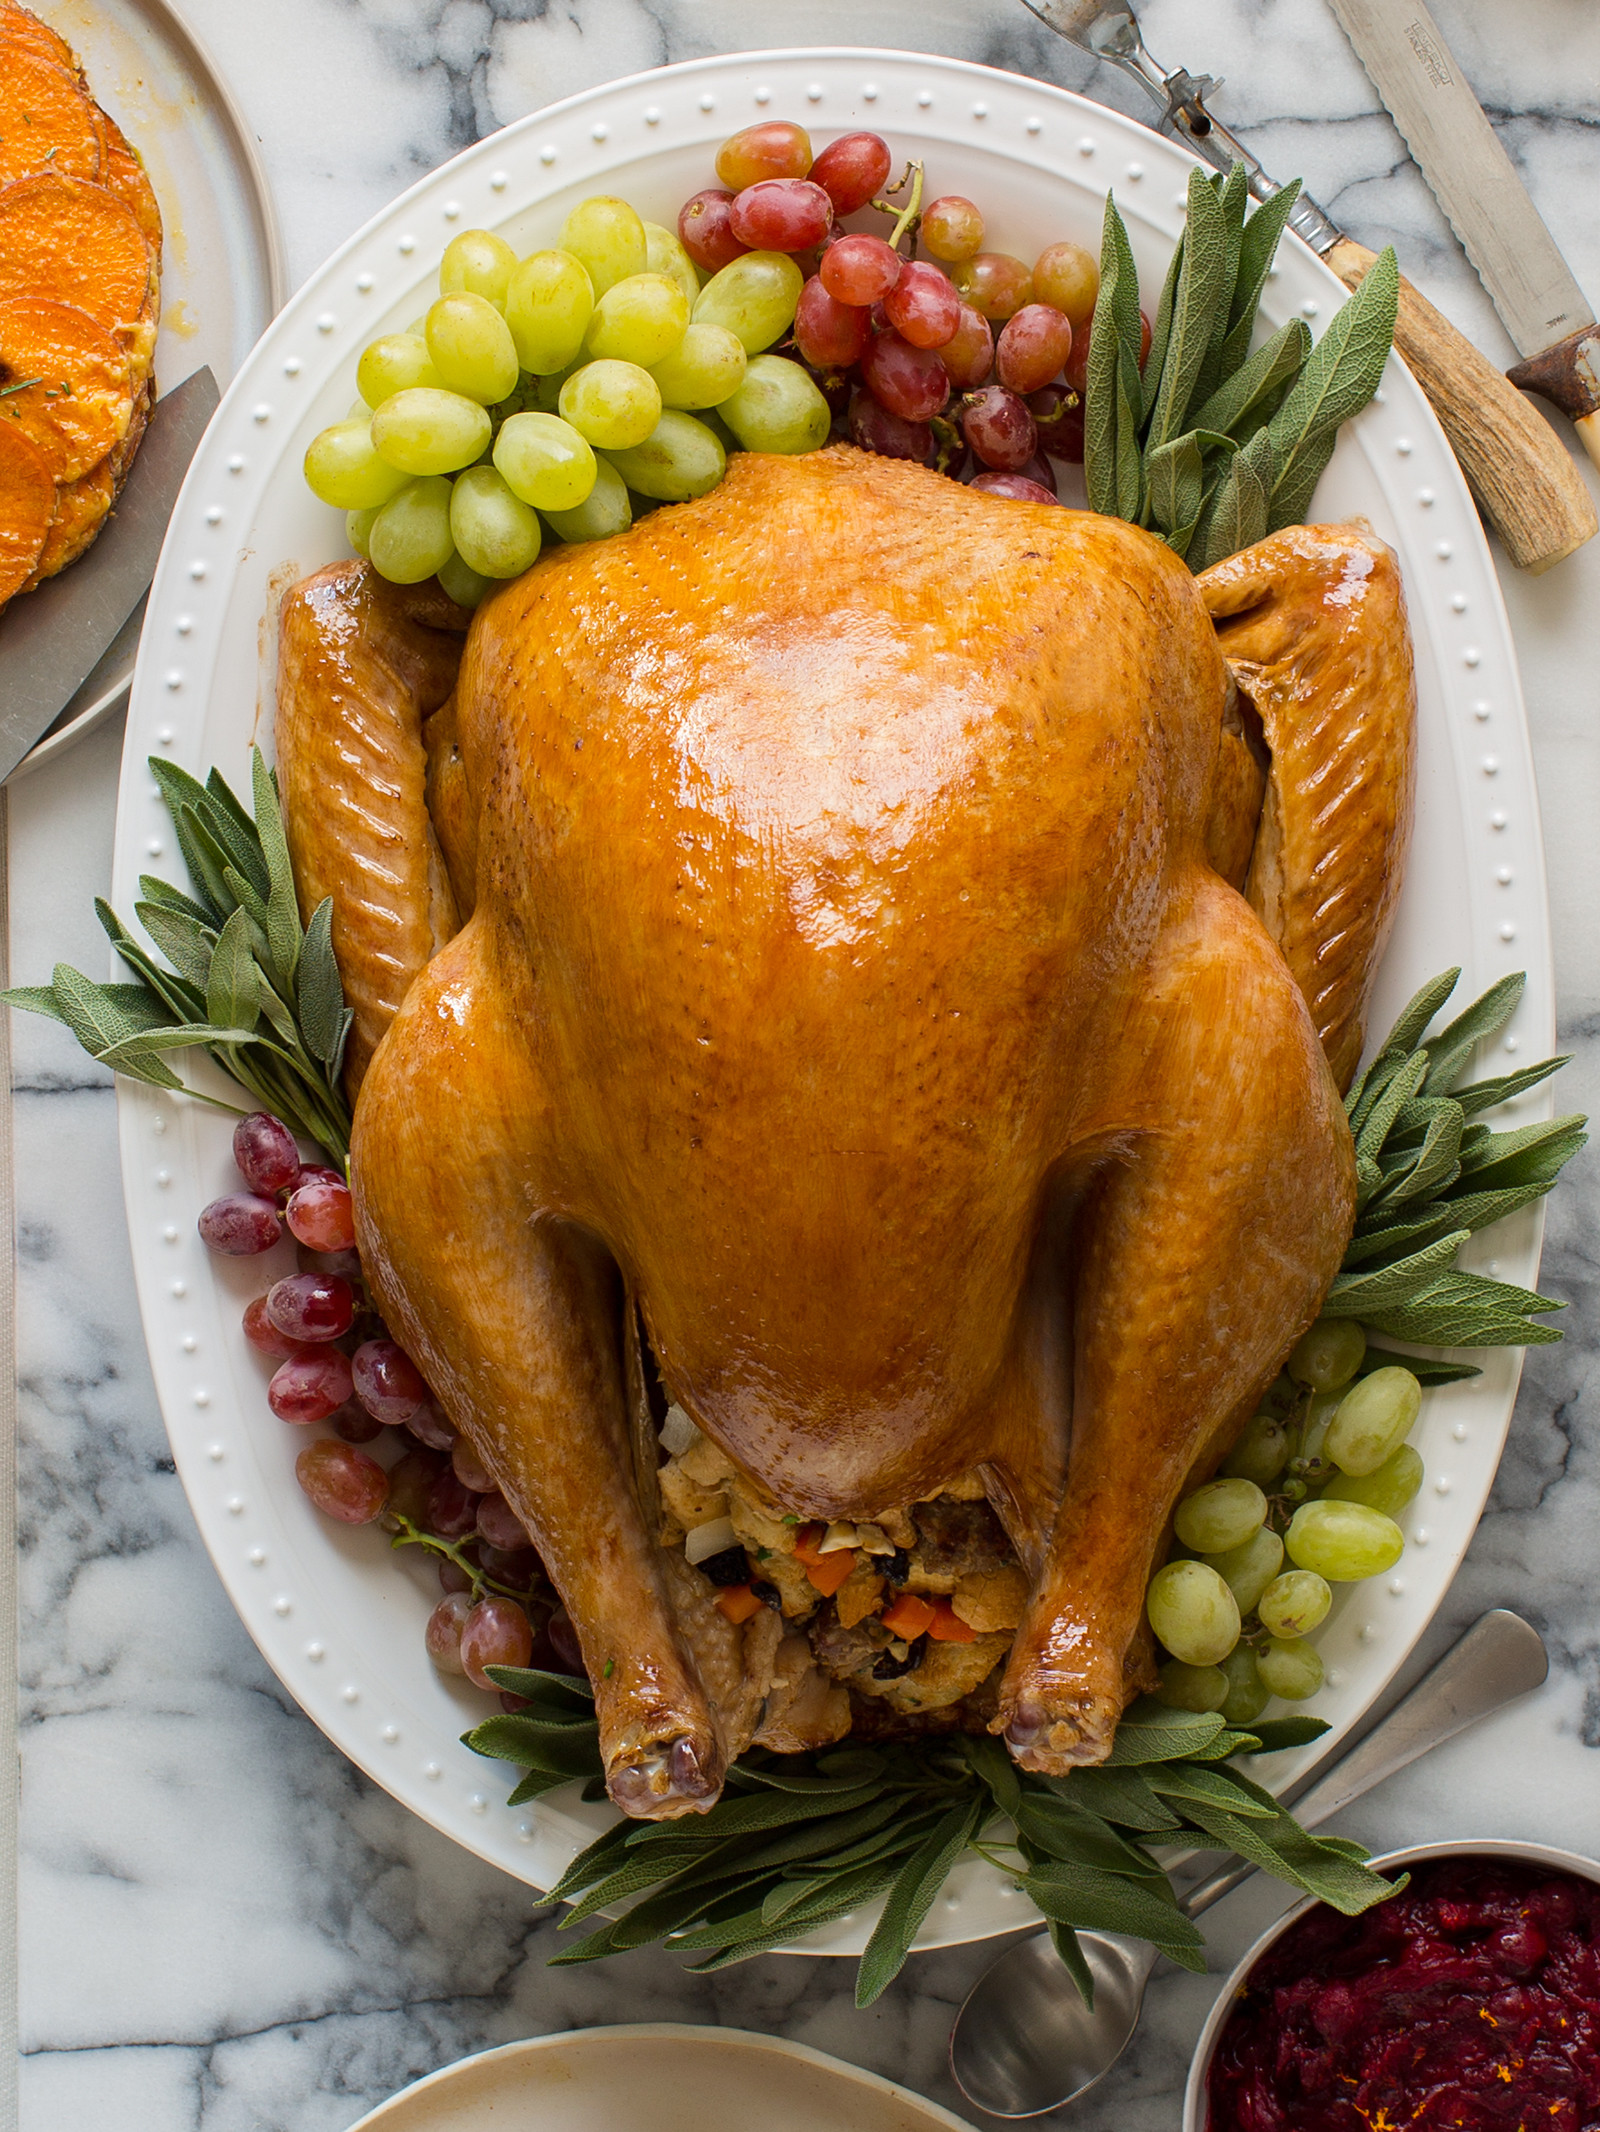 Turkey Recipe Thanksgiving  Citrus and Herb Roasted Turkey Thanksgiving